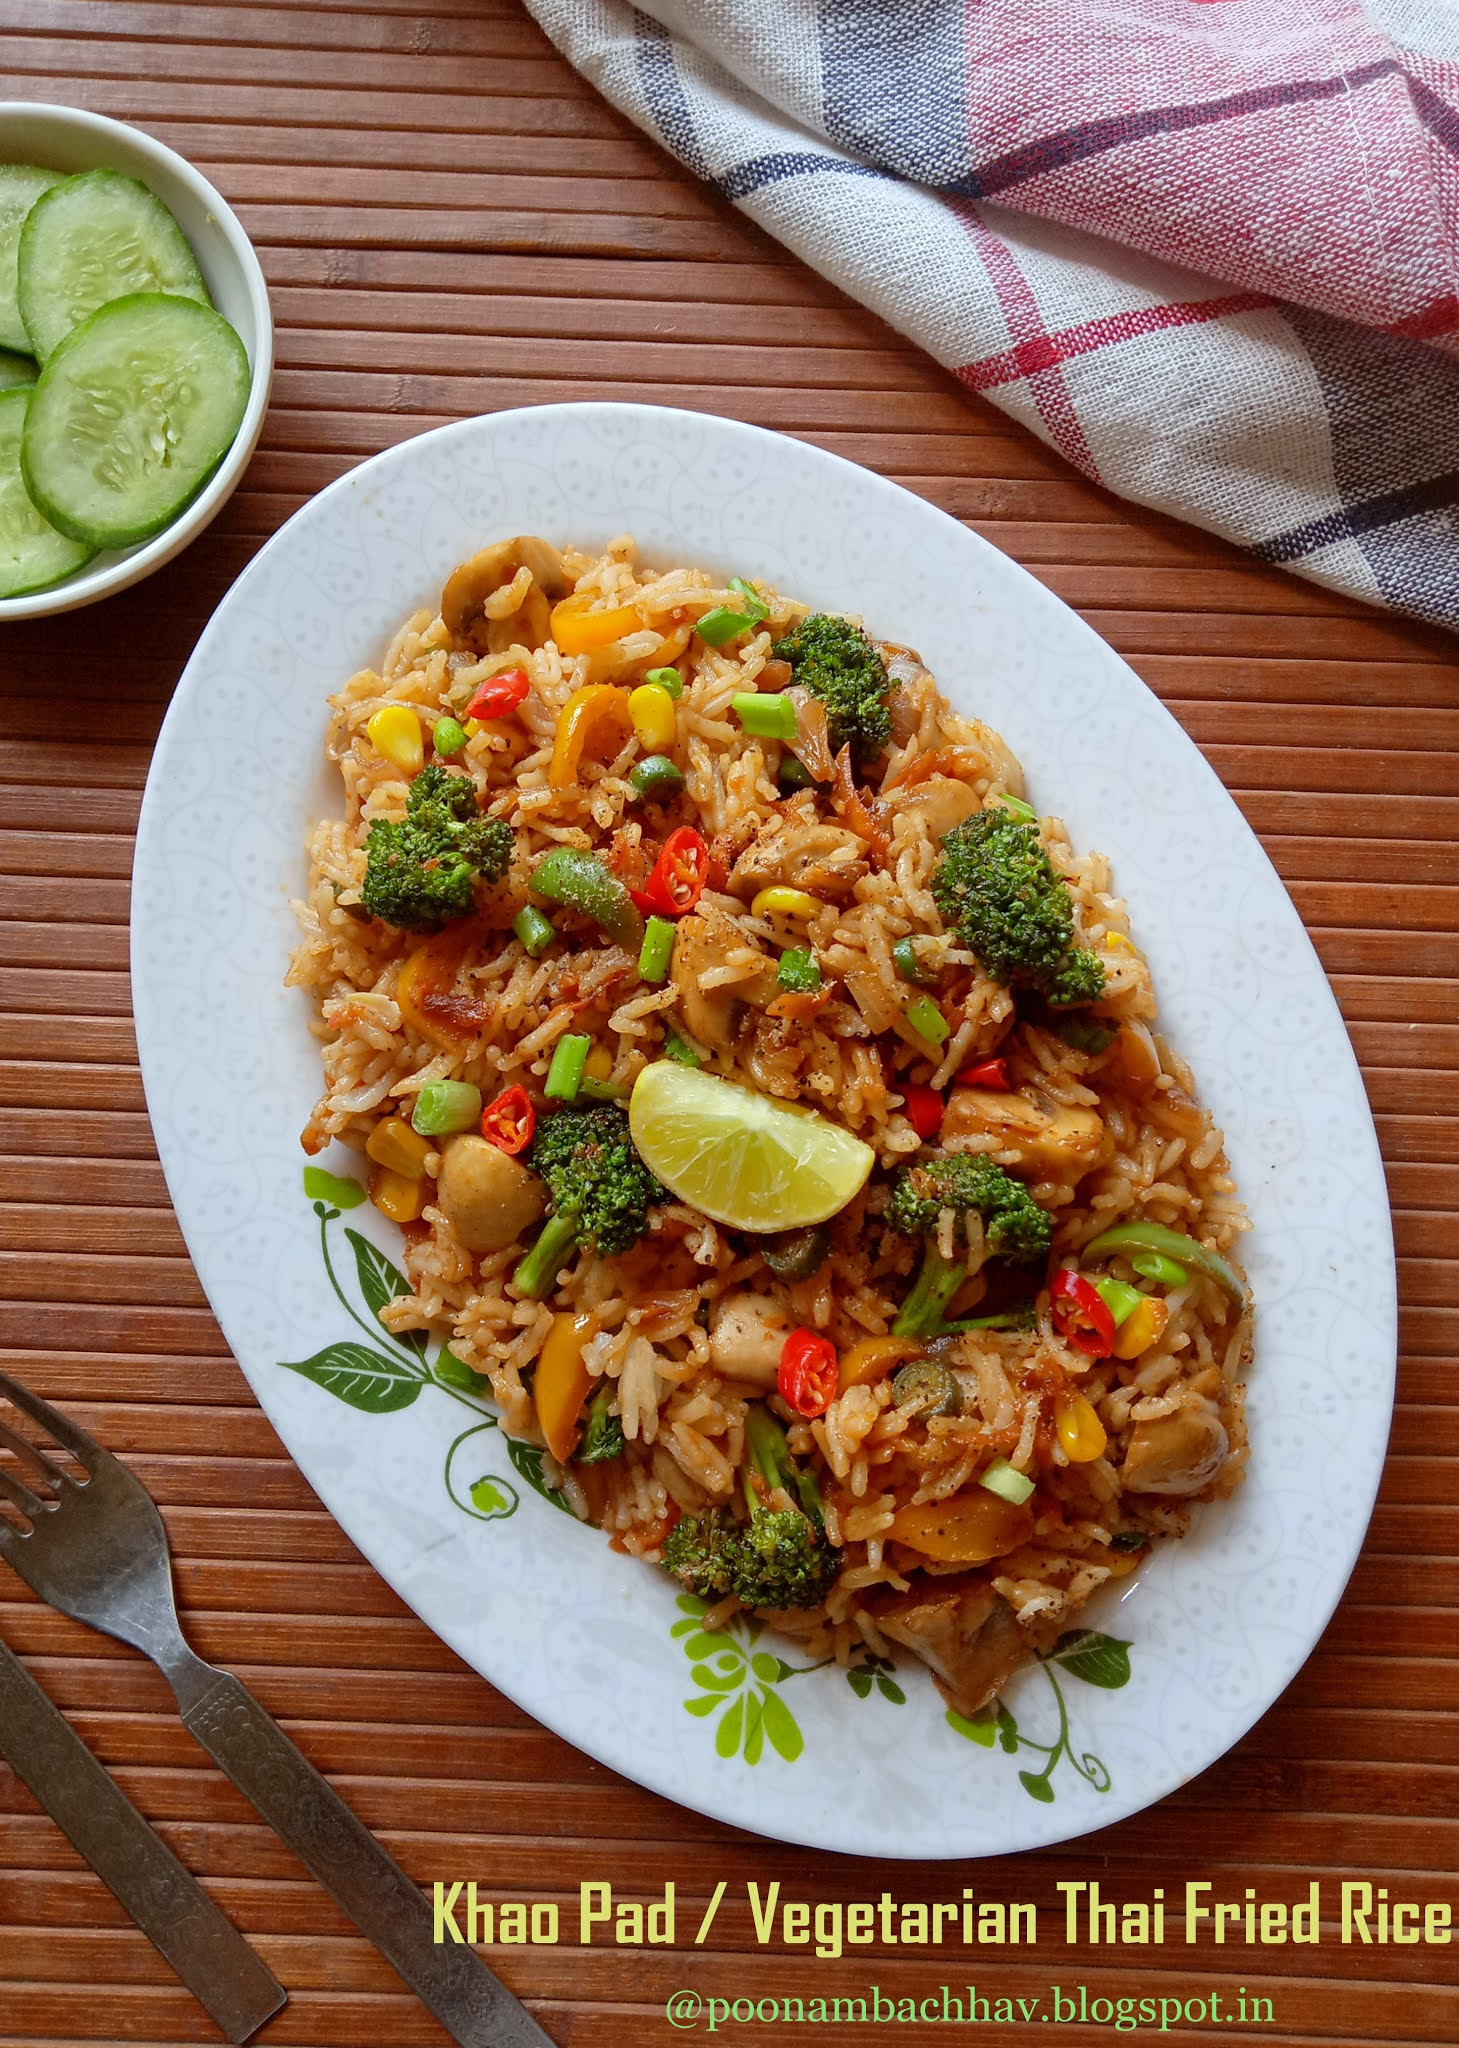 Annapurna Khao Pad Vegetarian Thai Fried Rice